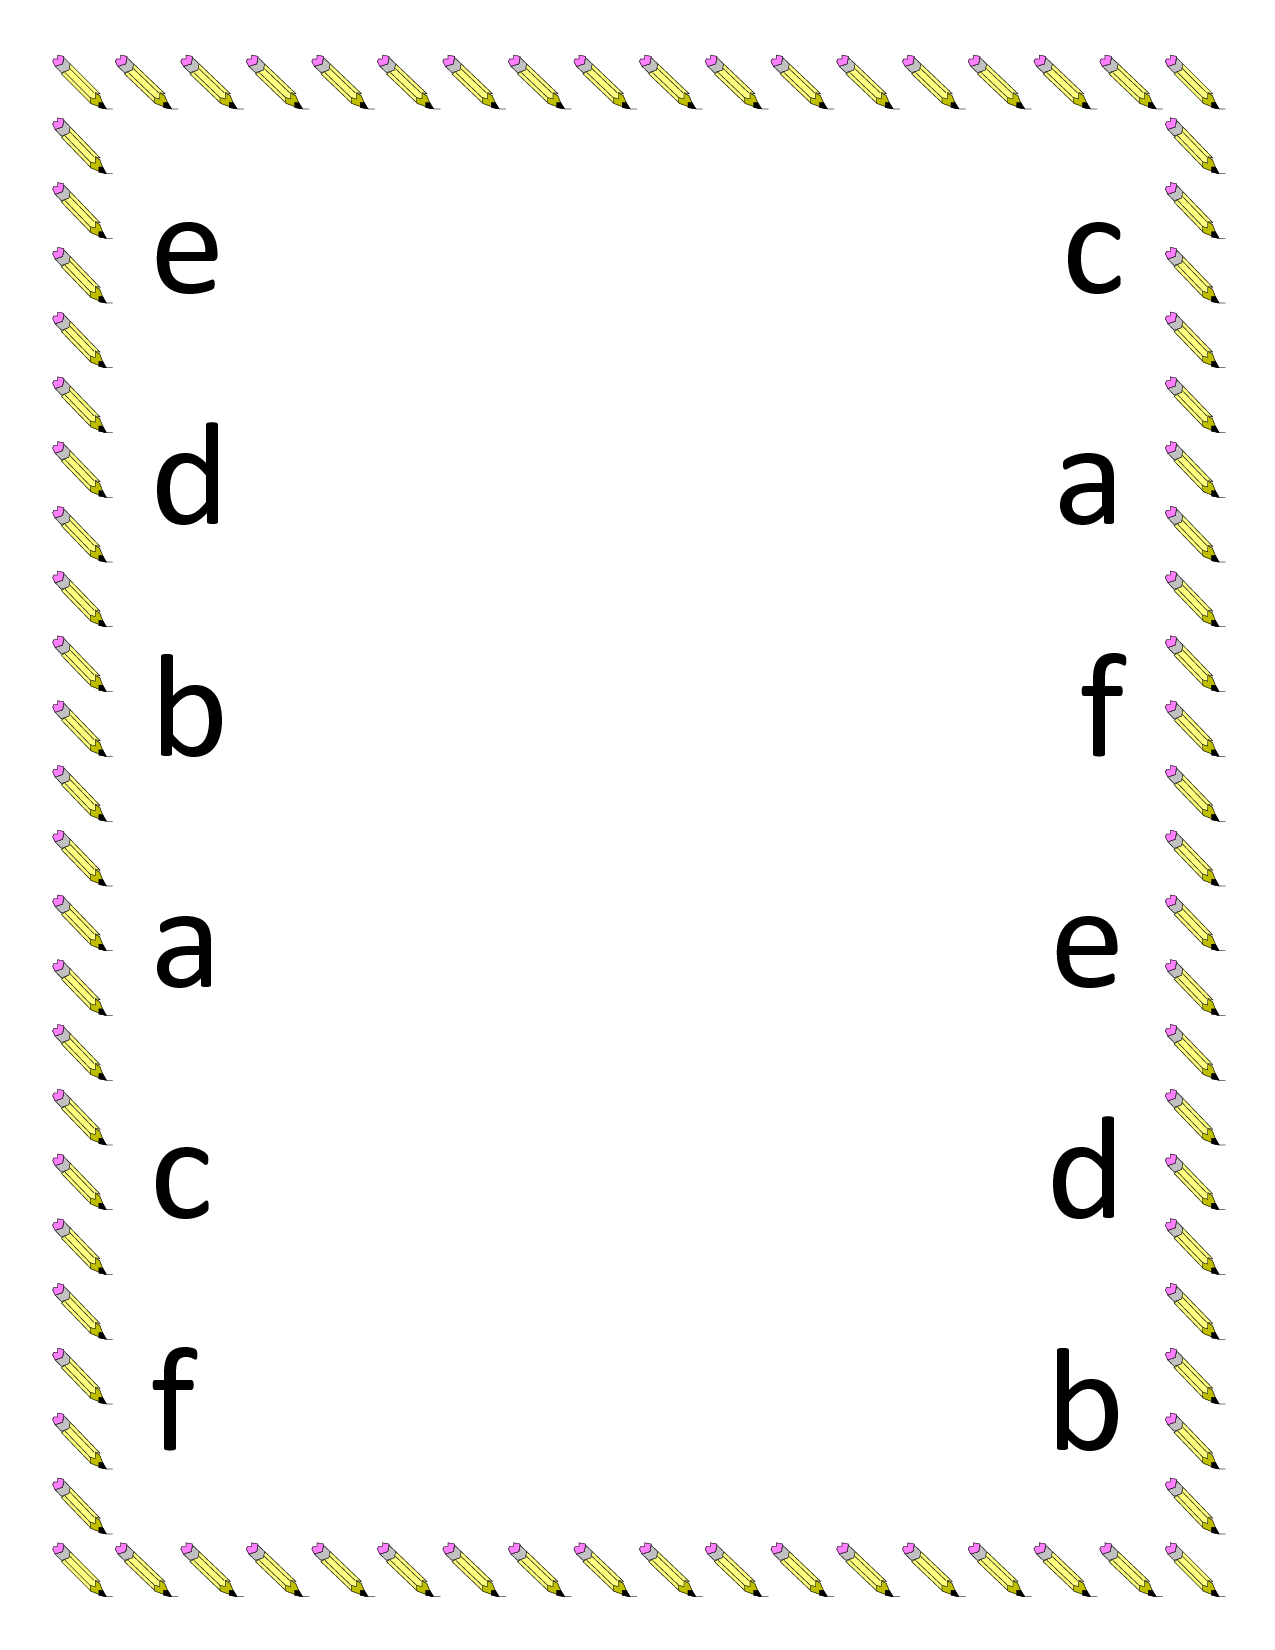 Alphabet Matching Worksheets For Preschoolers